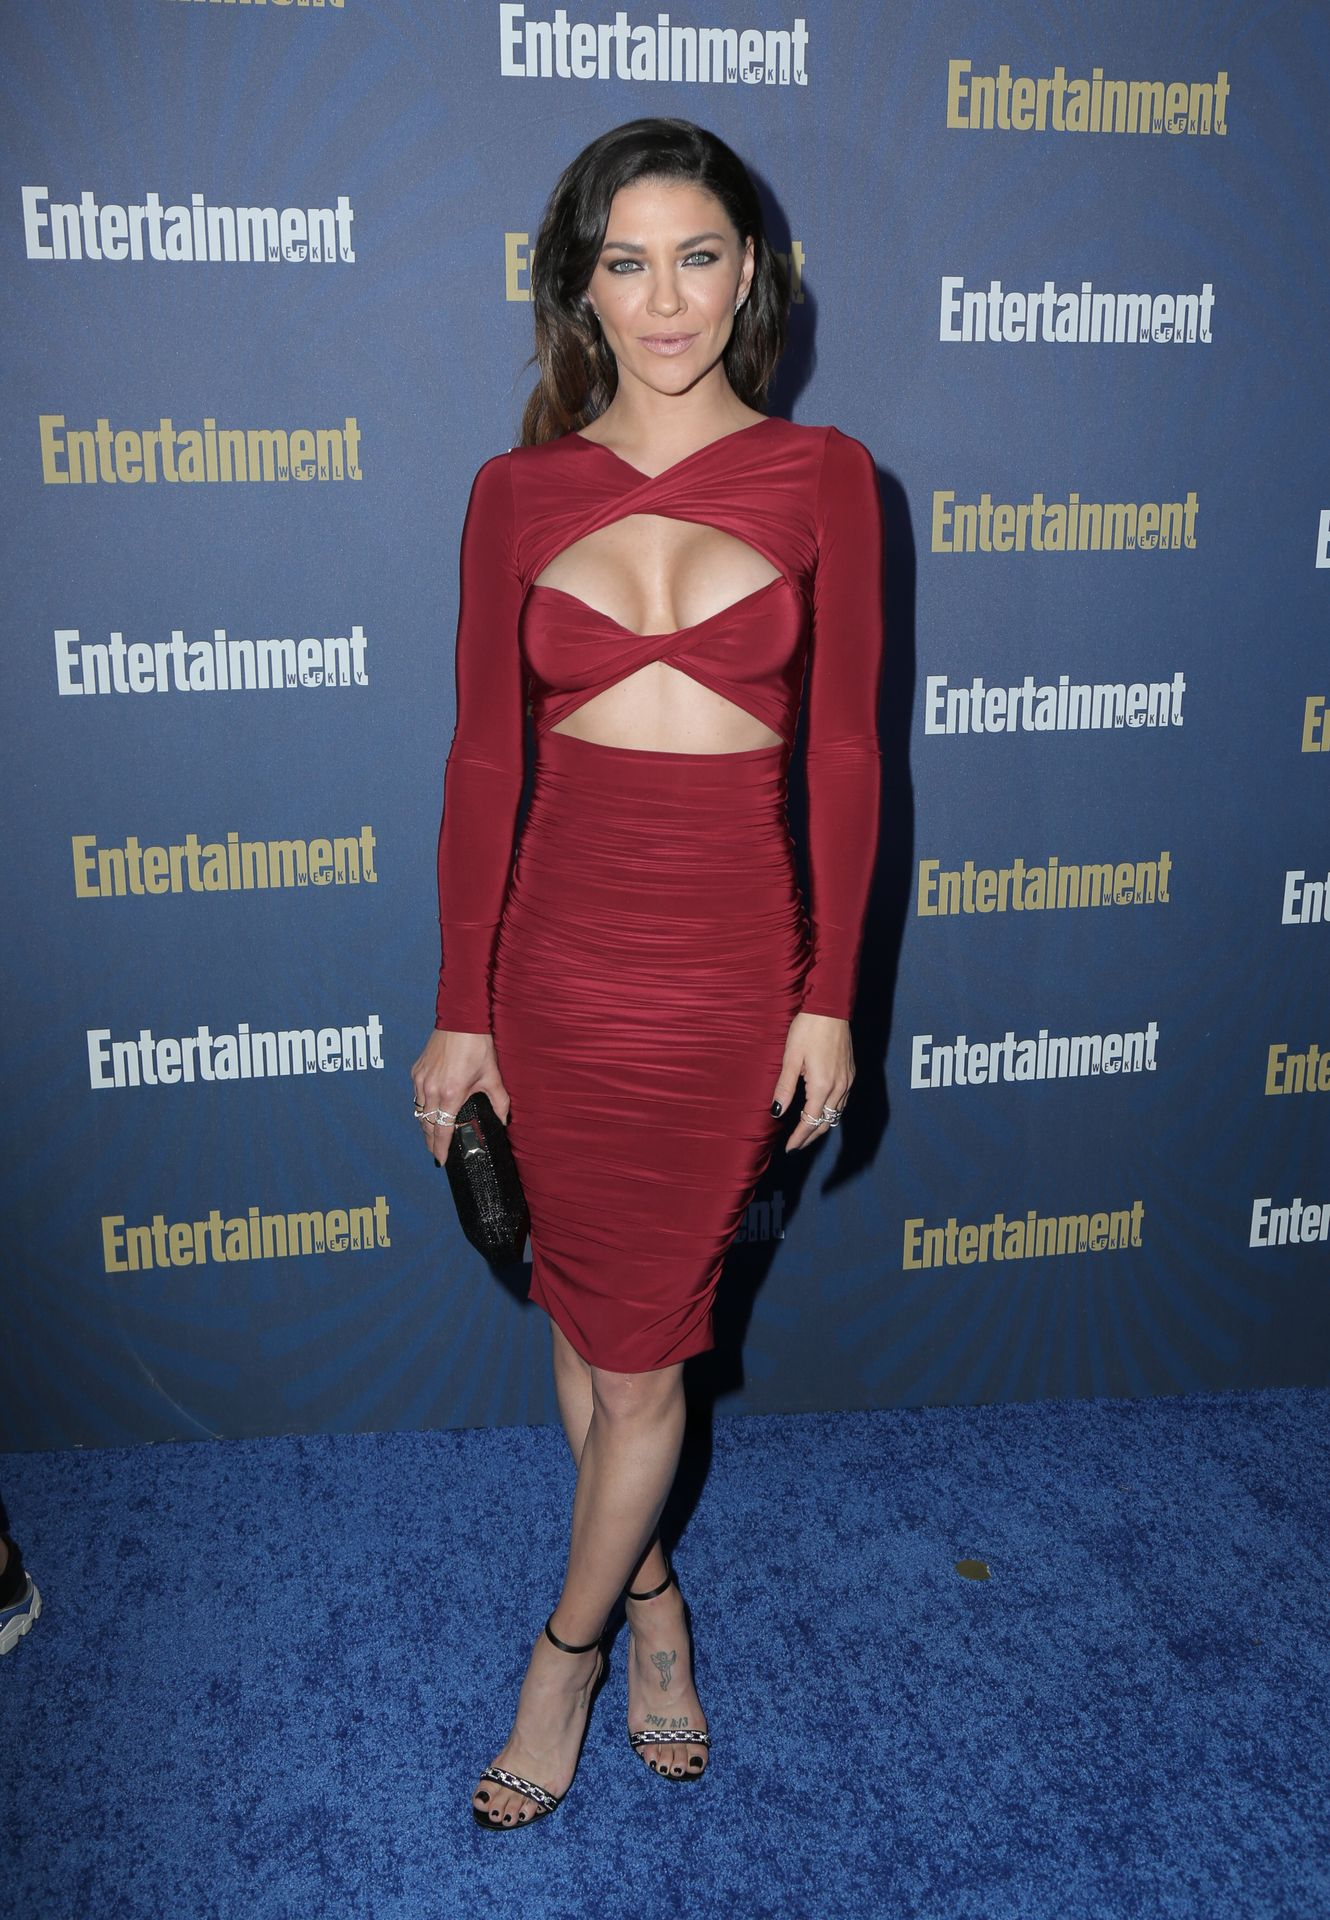 Jessica Szohr Shows Her Cleavage At The Entertainment Weekly Pre Sag Awards Celebration 0006